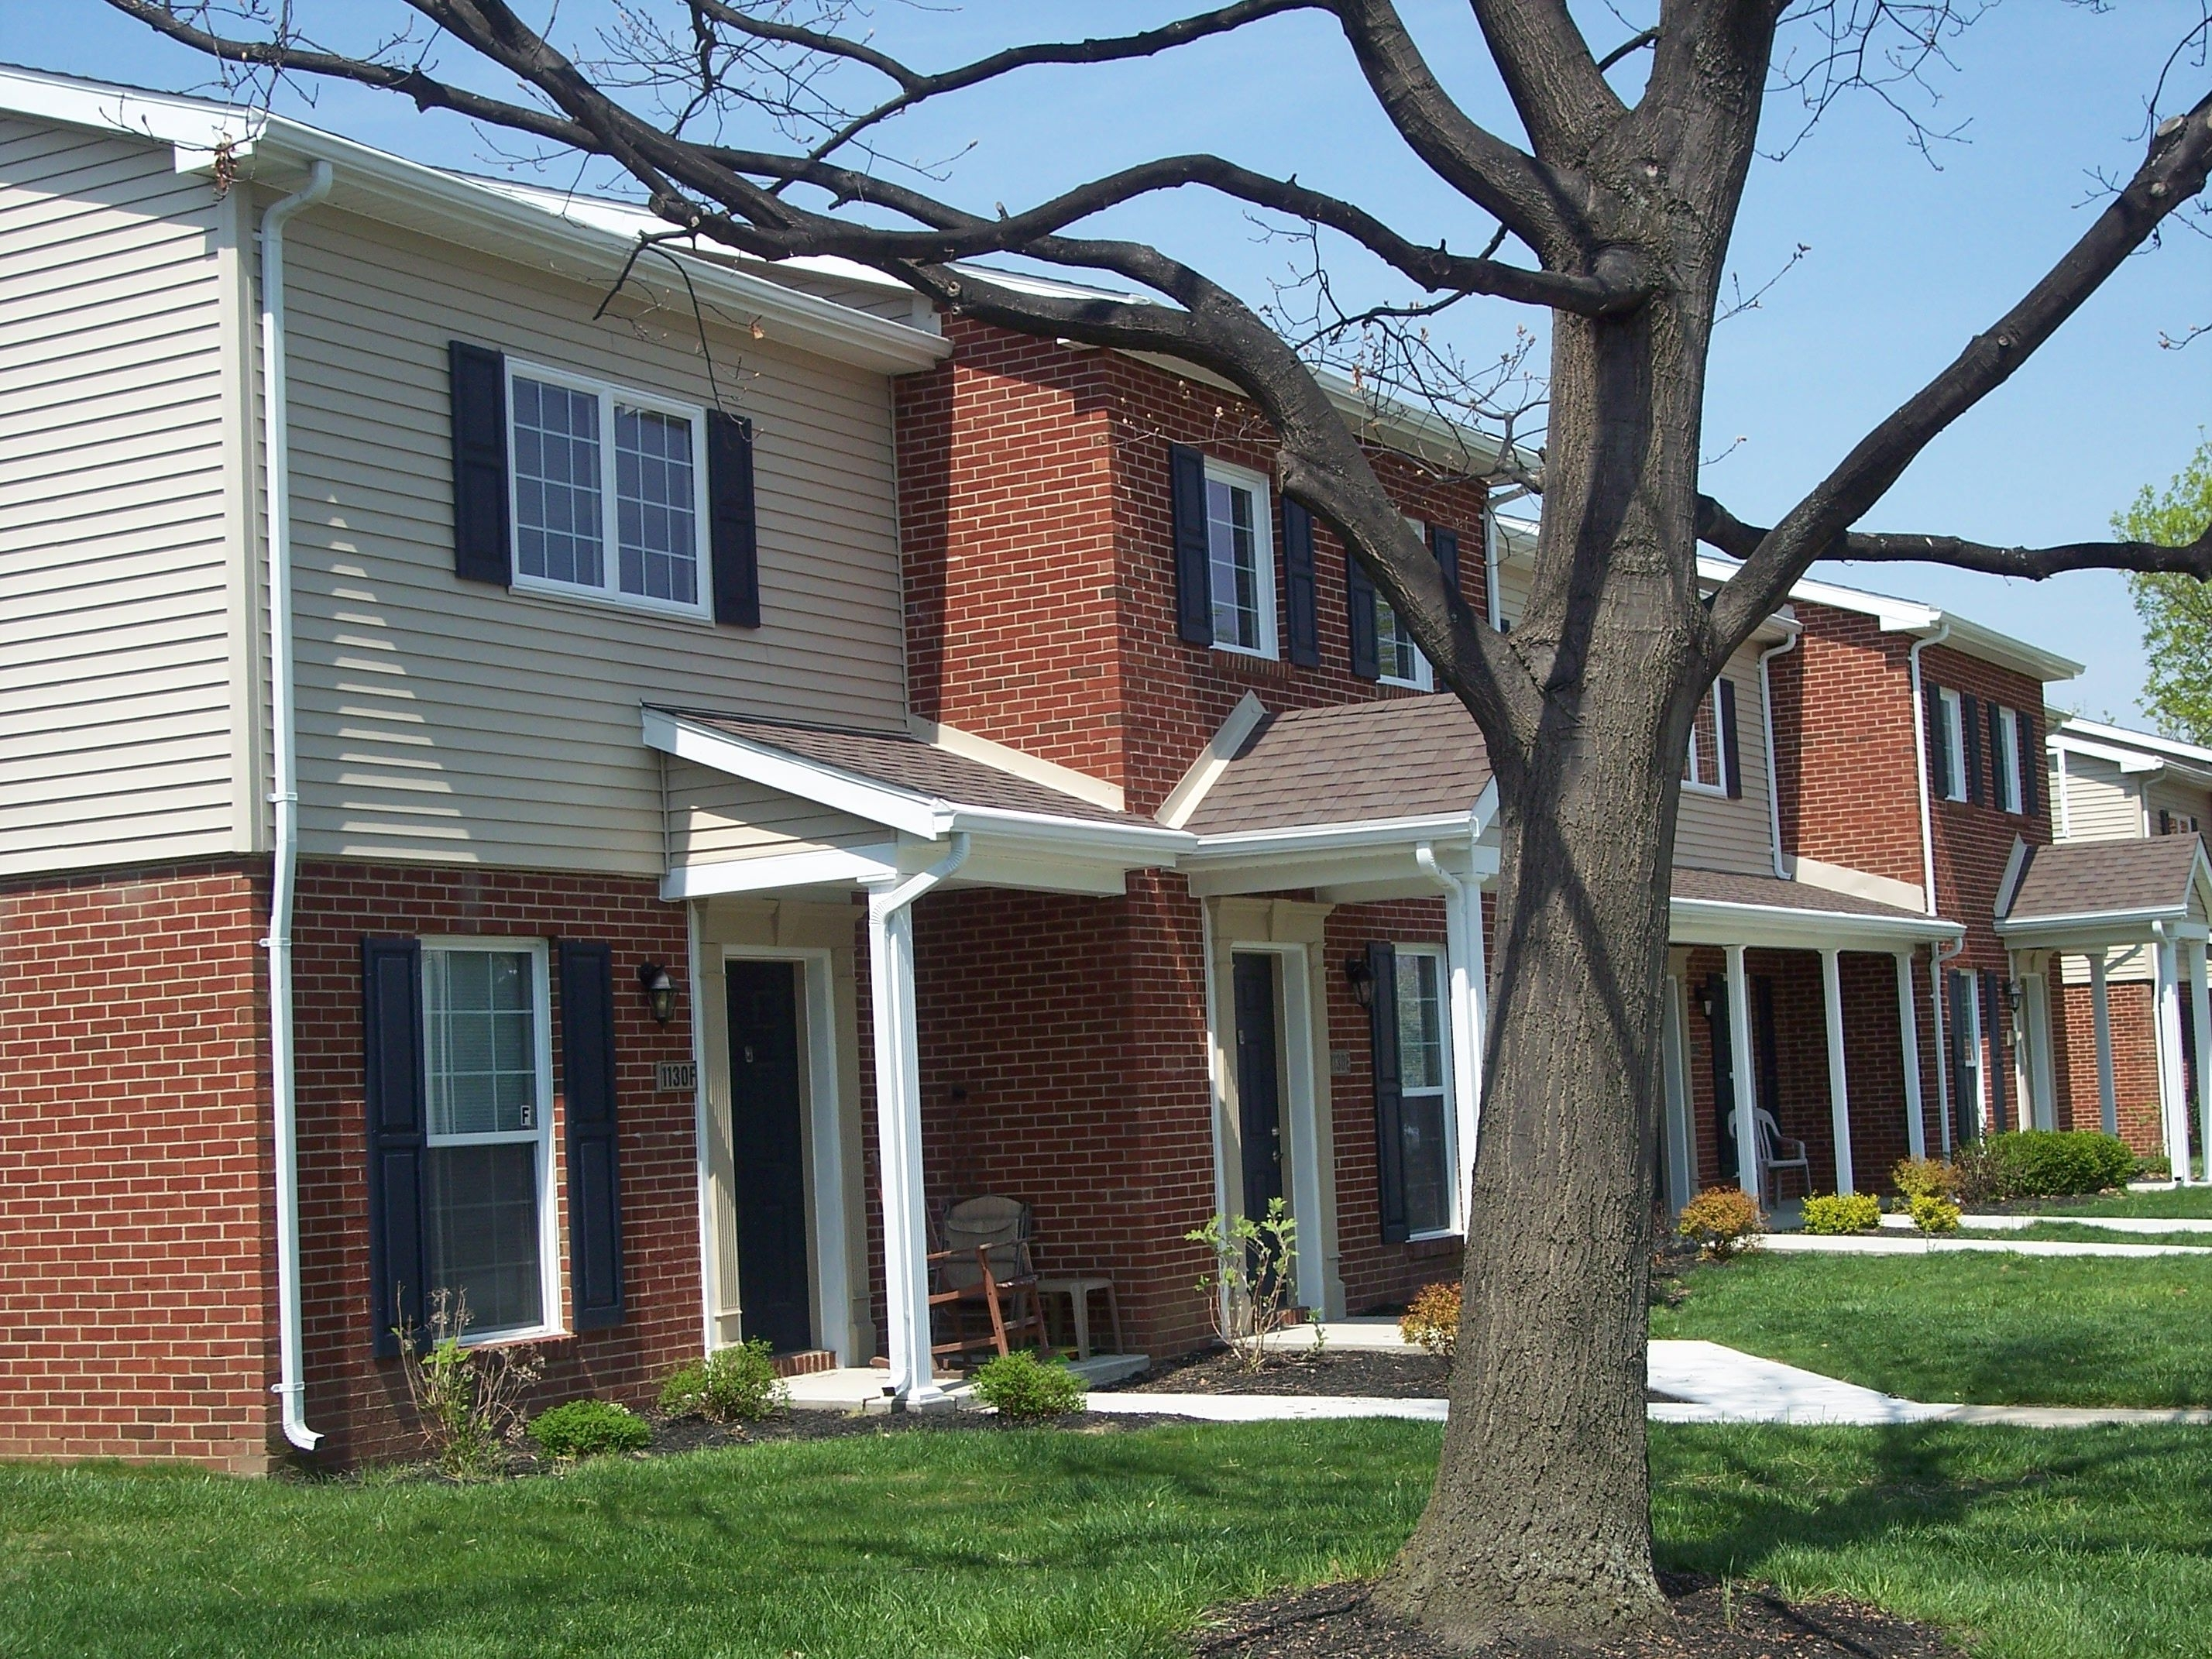 Forest Park Apartments, 1140 Sanlor Ave, West Milton, Oh 45383 within Garden Manor Apartments